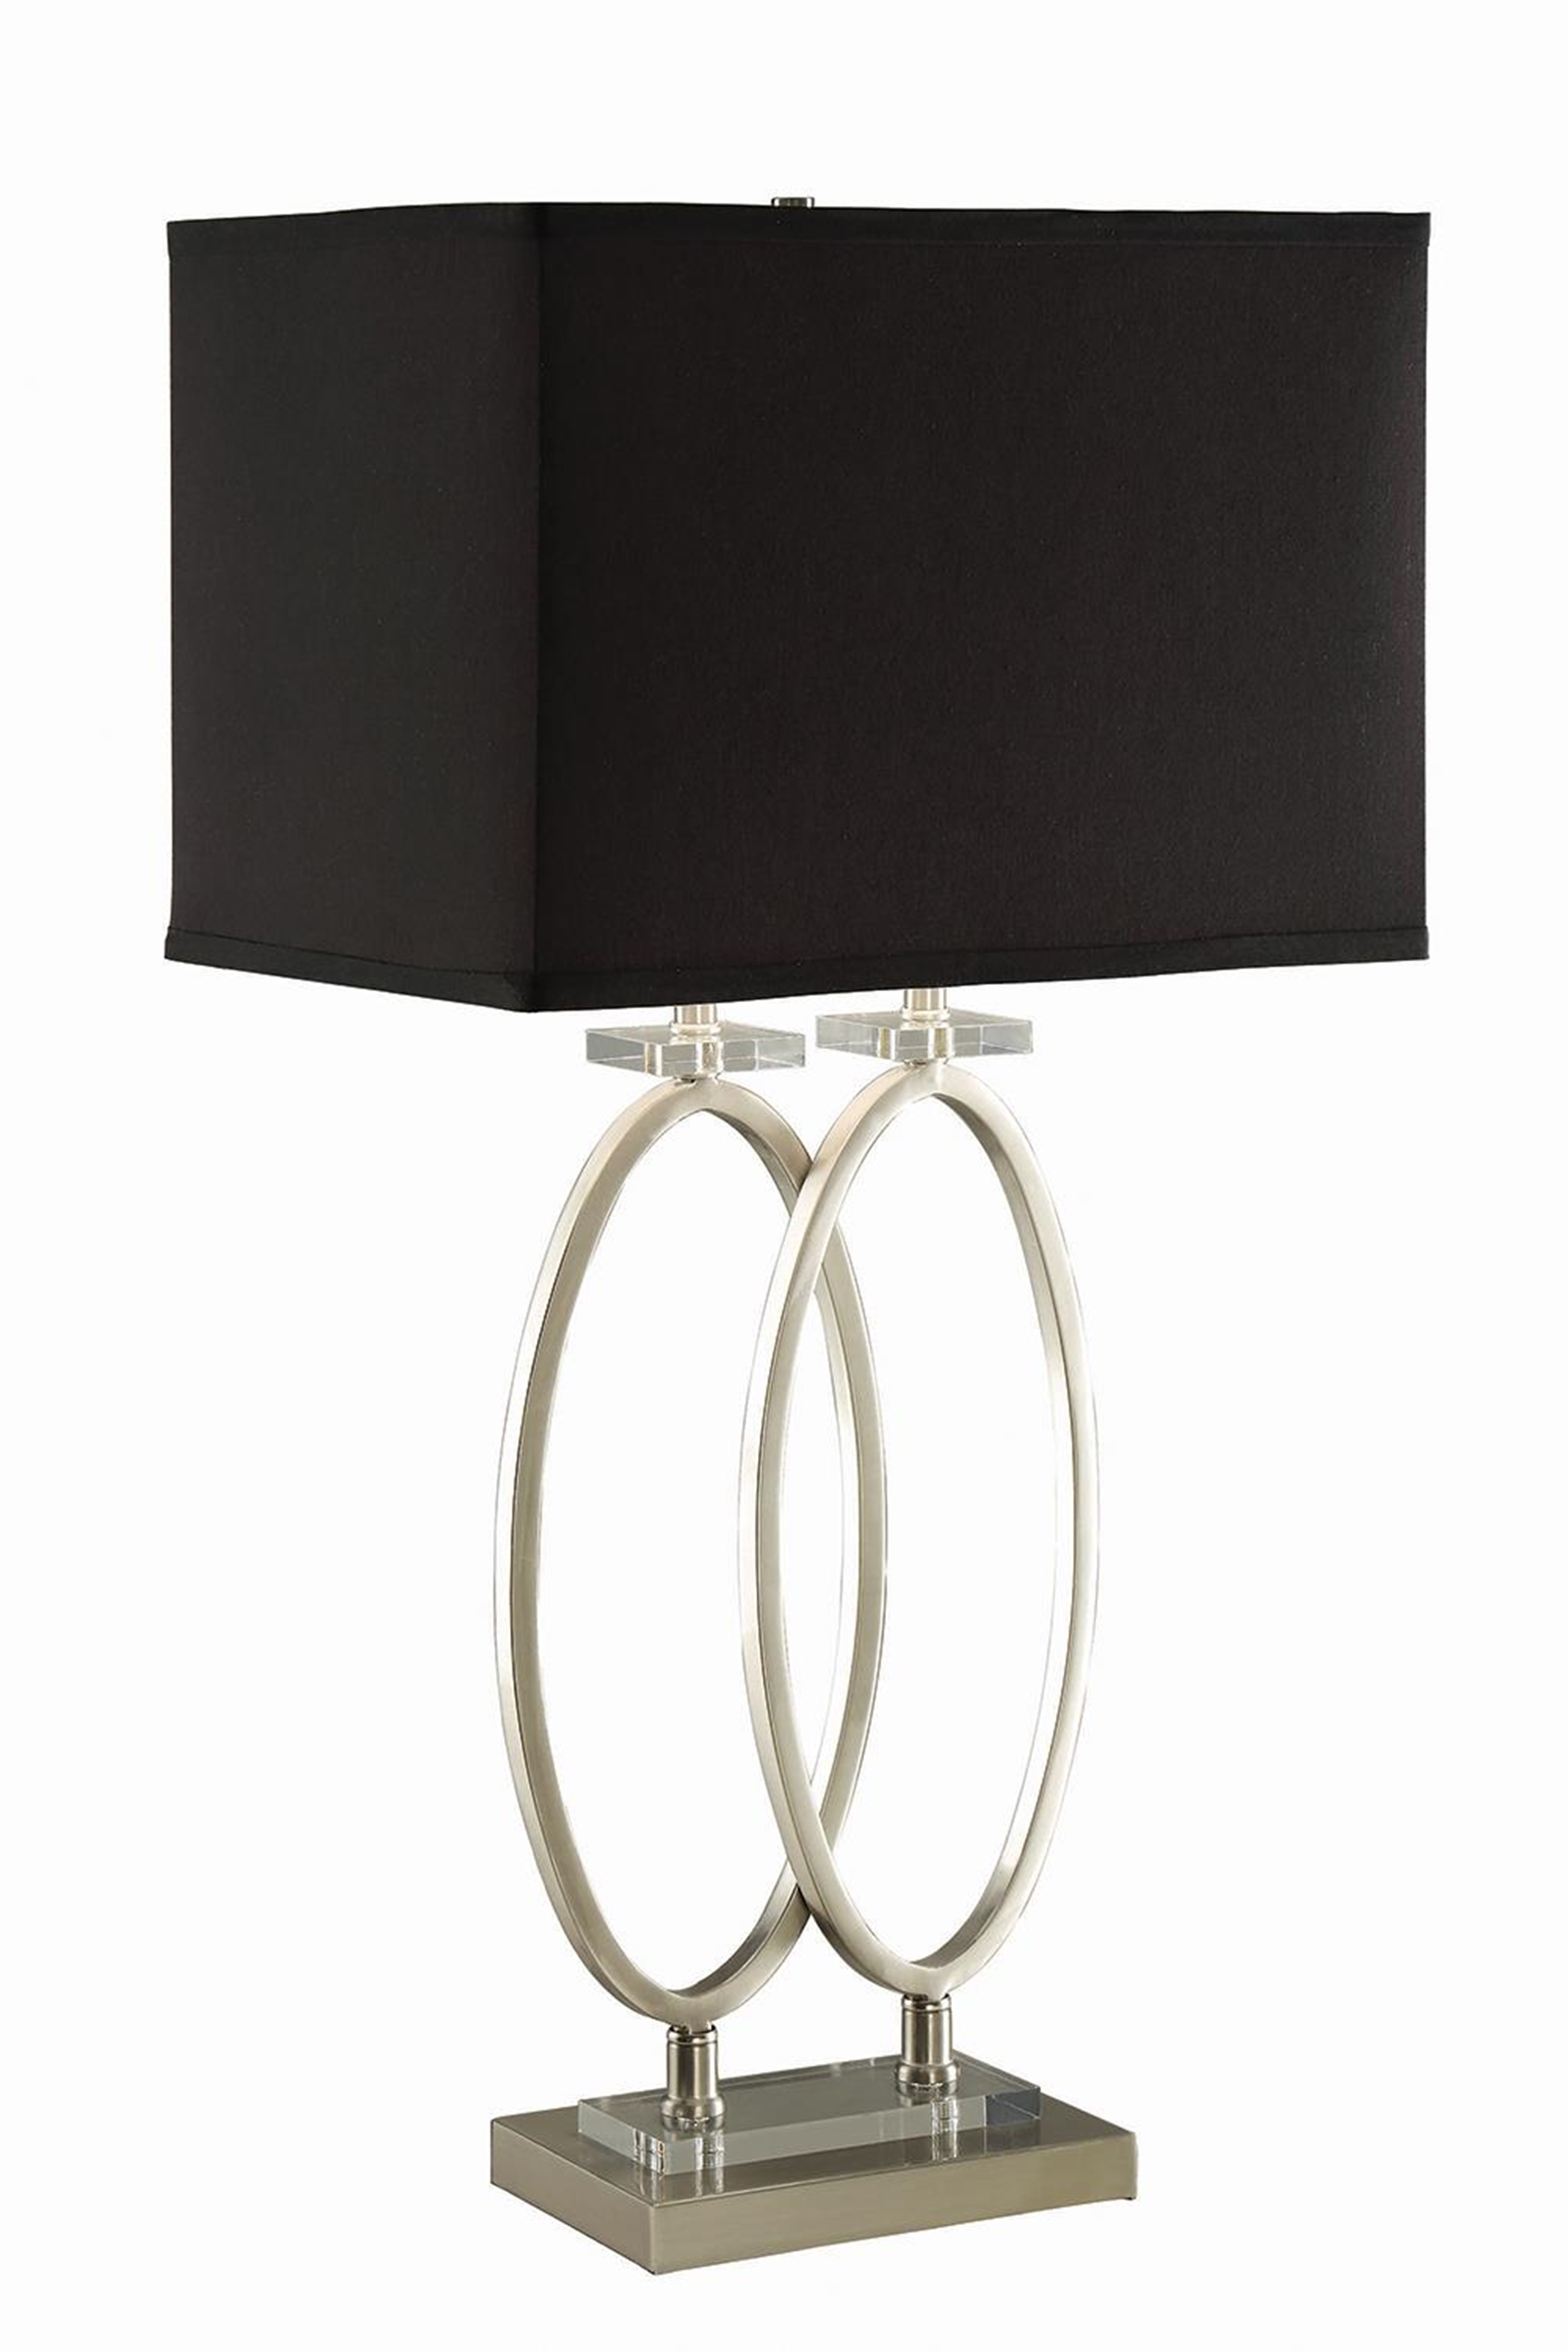 Transitional Nickel and Black Accent Lamp